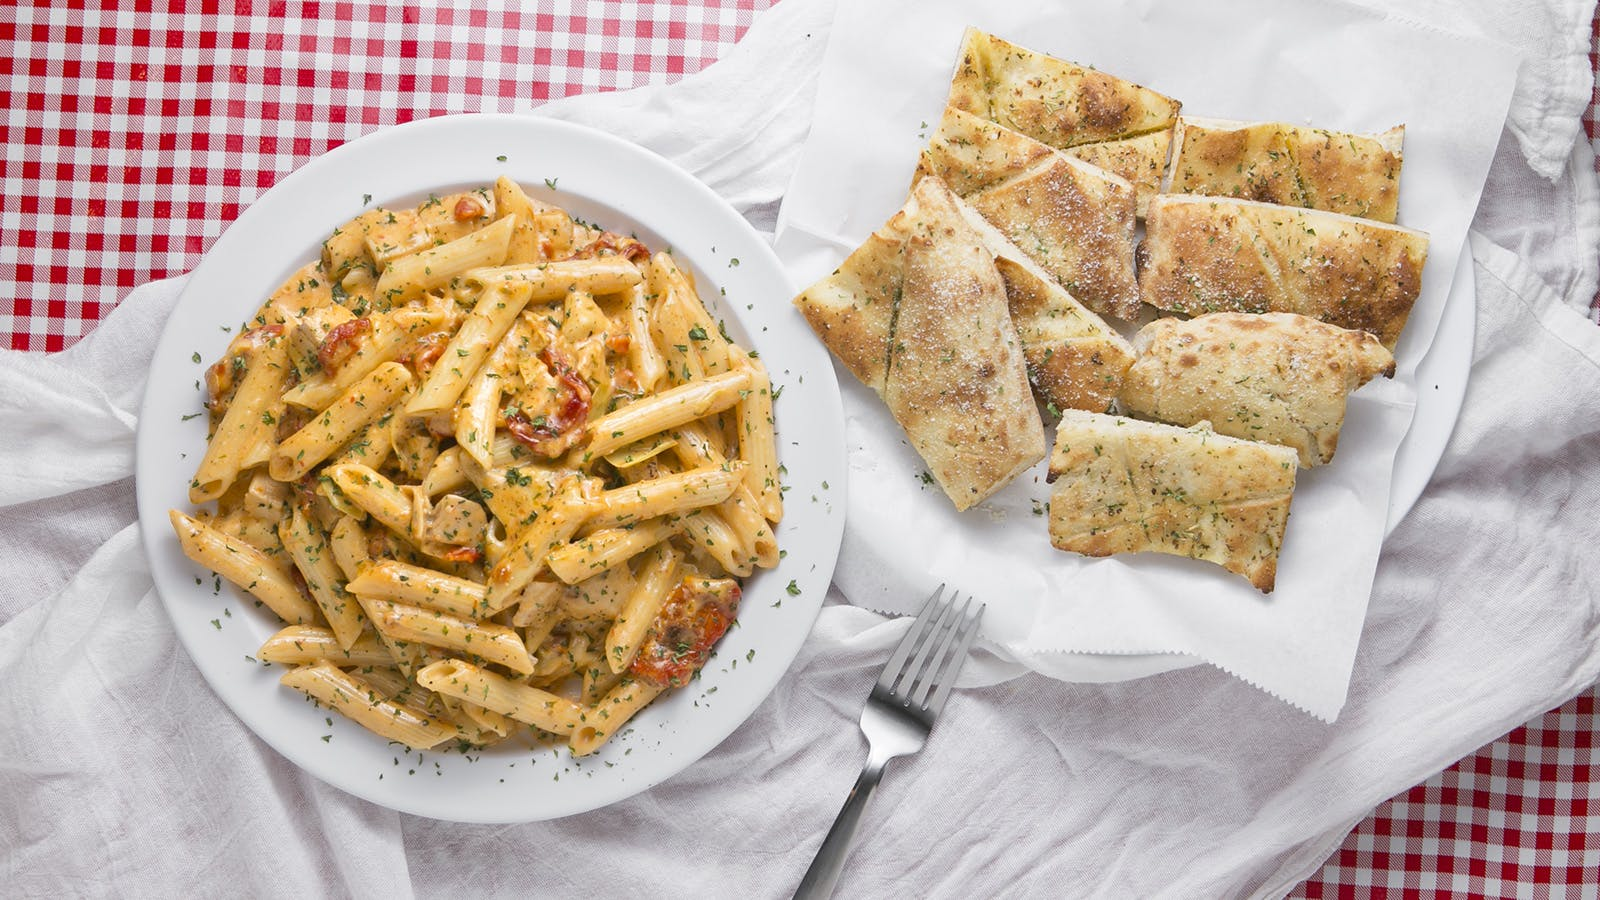 House Specialty Ma Ma Mia from Ameci Pizza & Pasta - Lake Forest in Lake Forest, CA